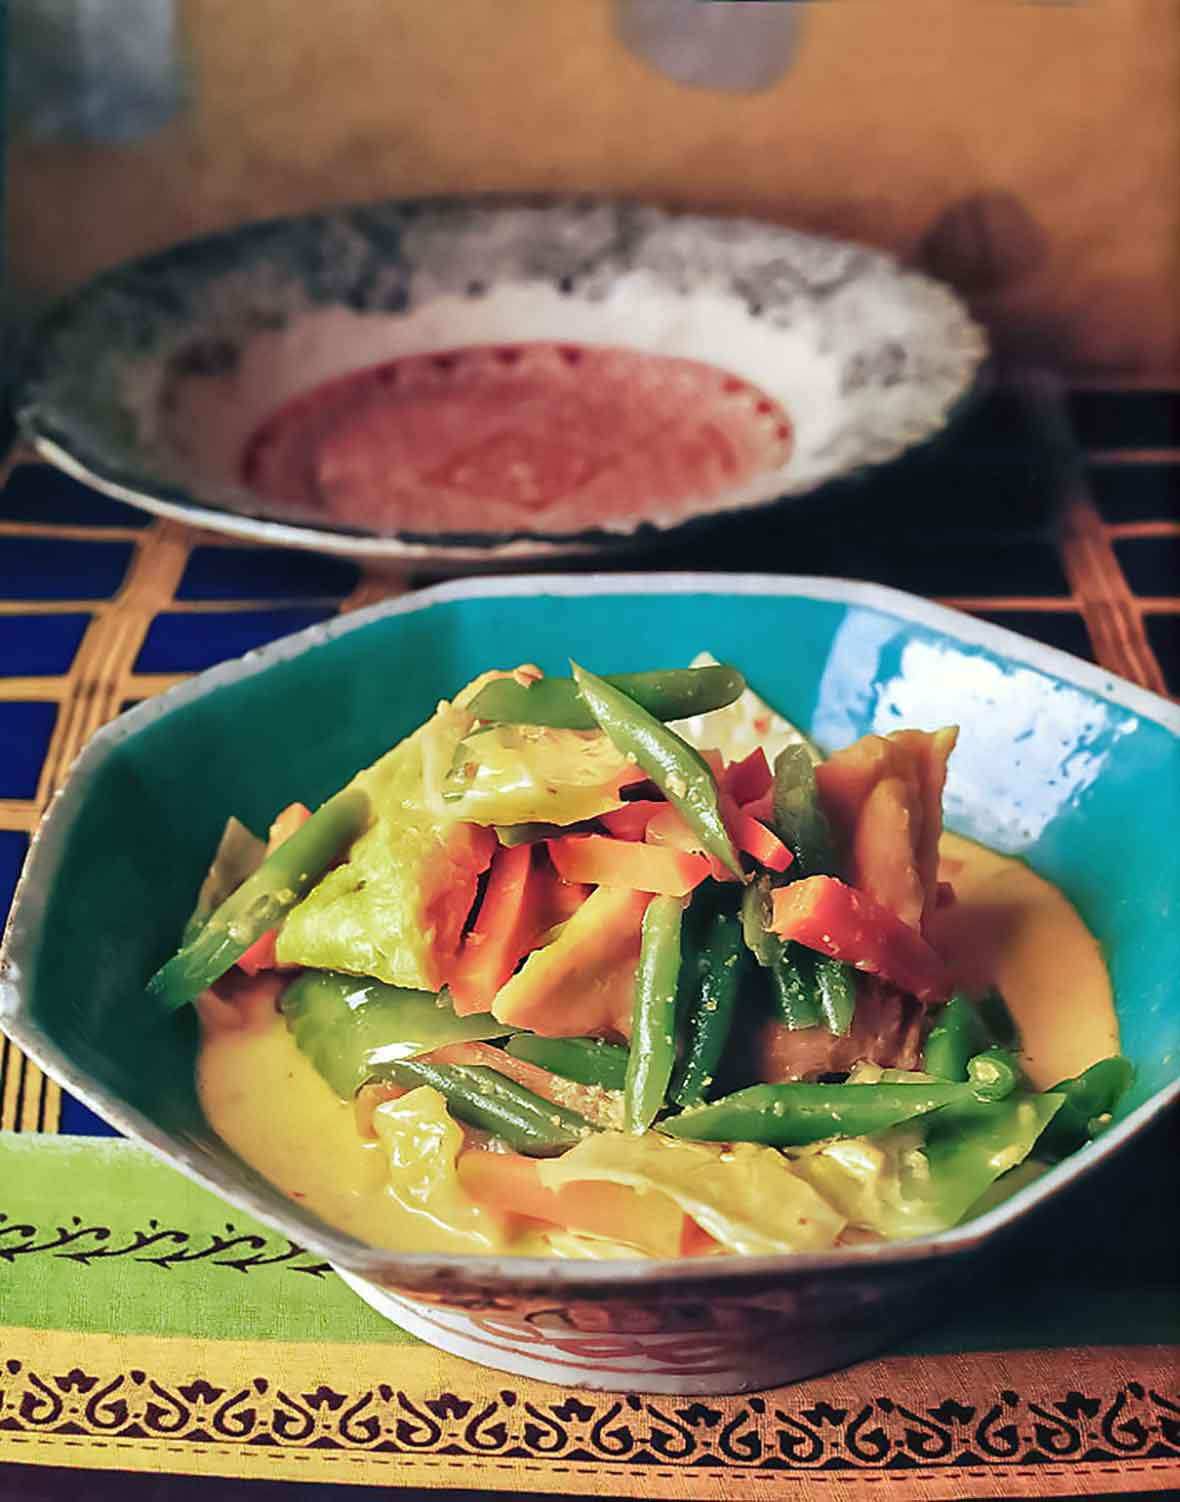 An octagonal bowl filled with tofu and vegetables in coconut milk on a colorful cloth with a large bowl in the background.